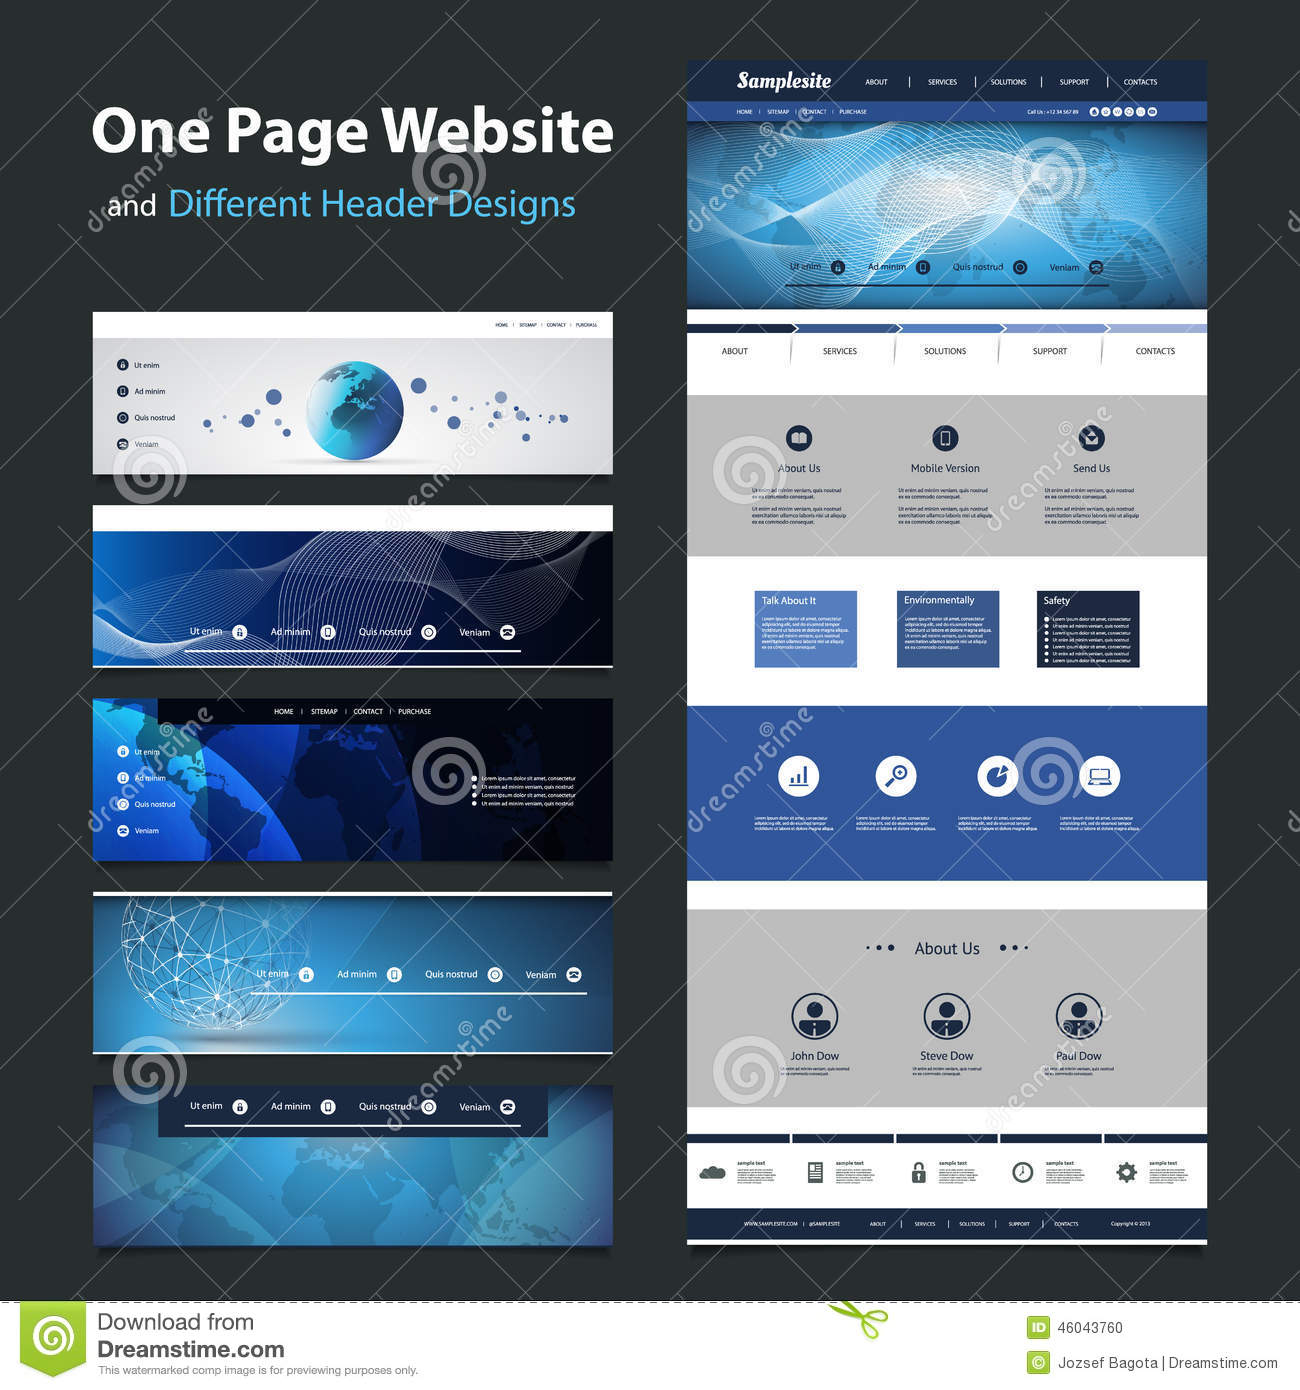 free website headers images